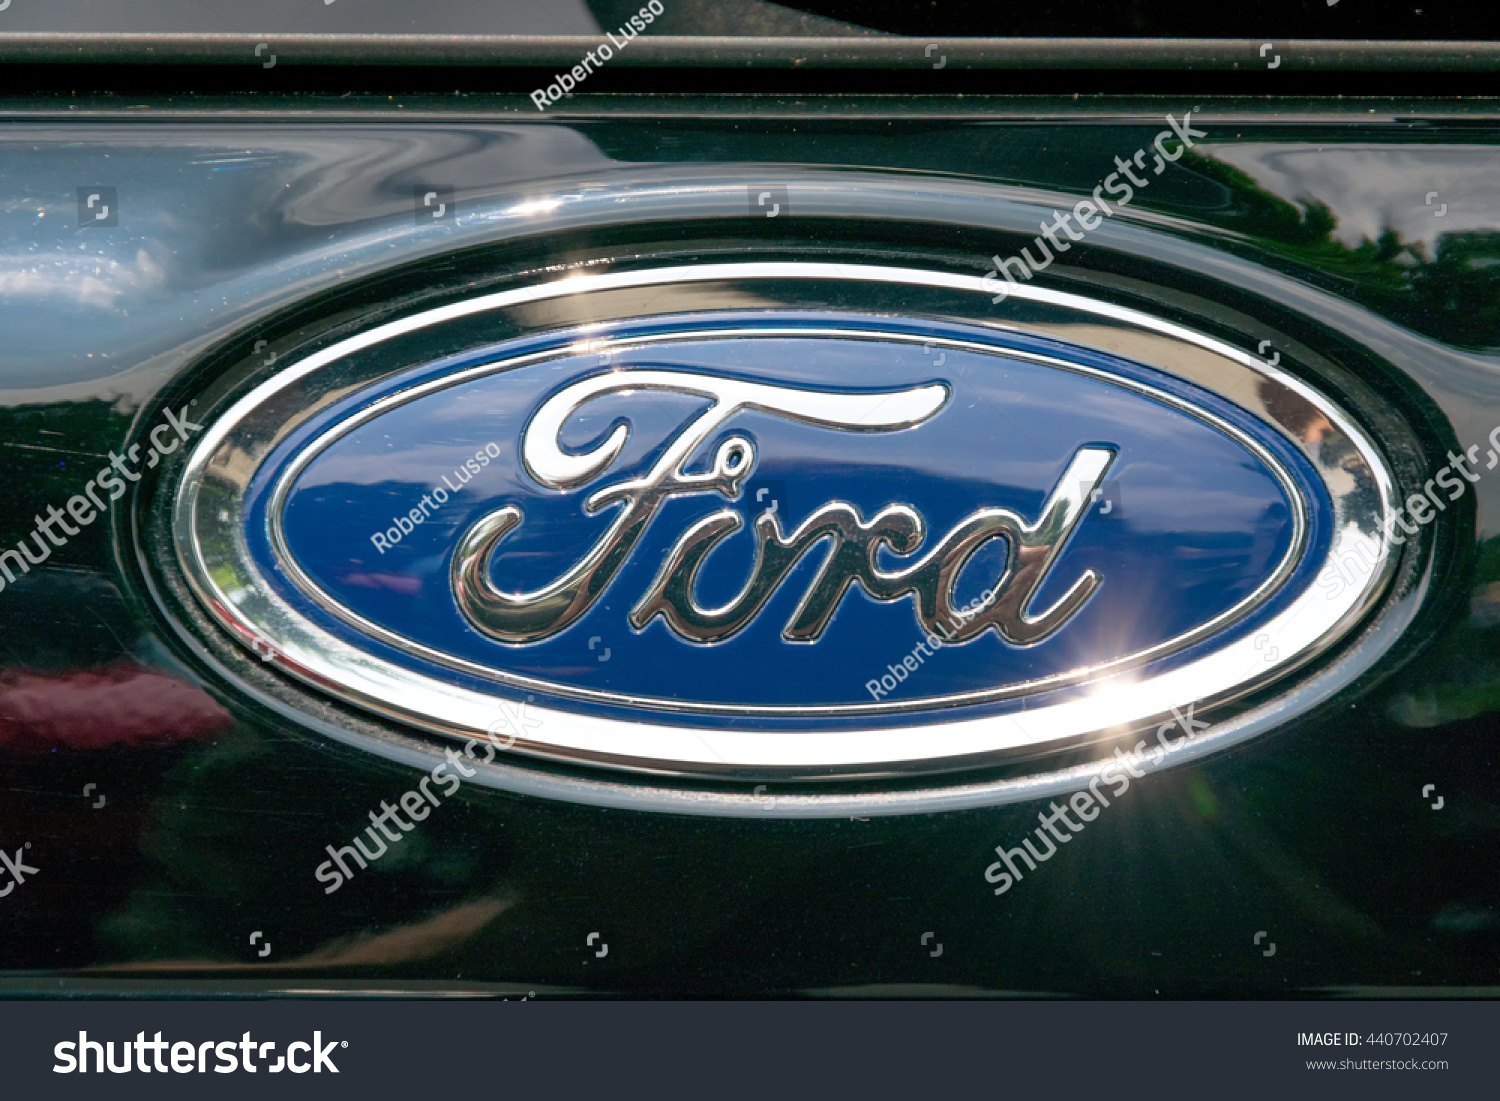 Friday 24 March 2017 In Chiang Mai Thailand Logo Of Ford Car On